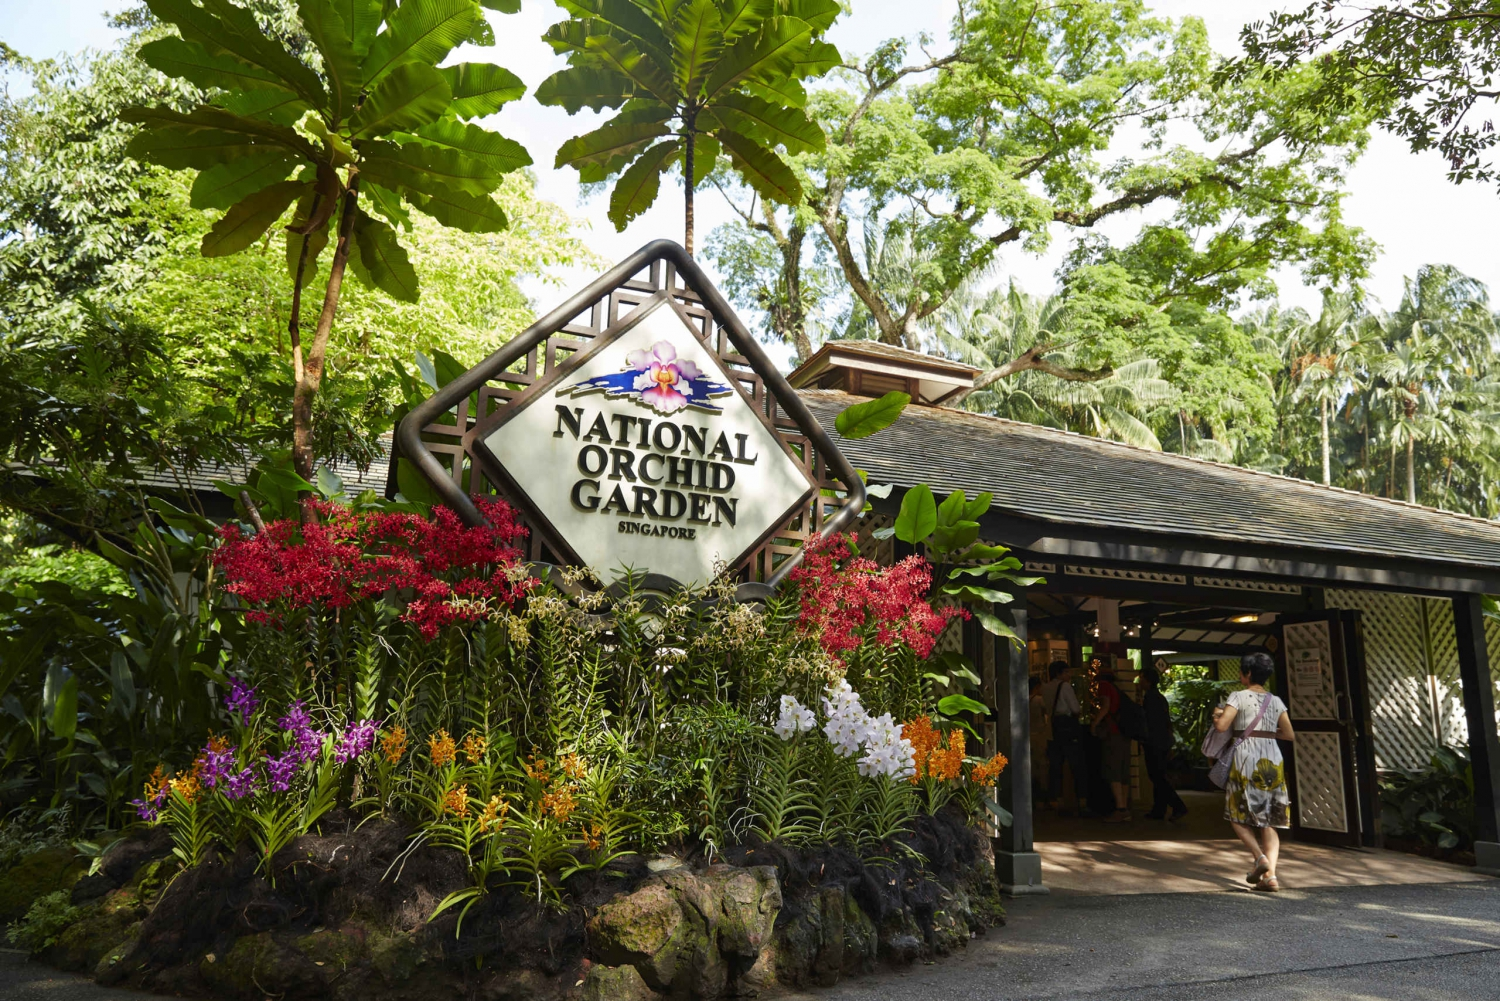 National Orchid Garden Admission